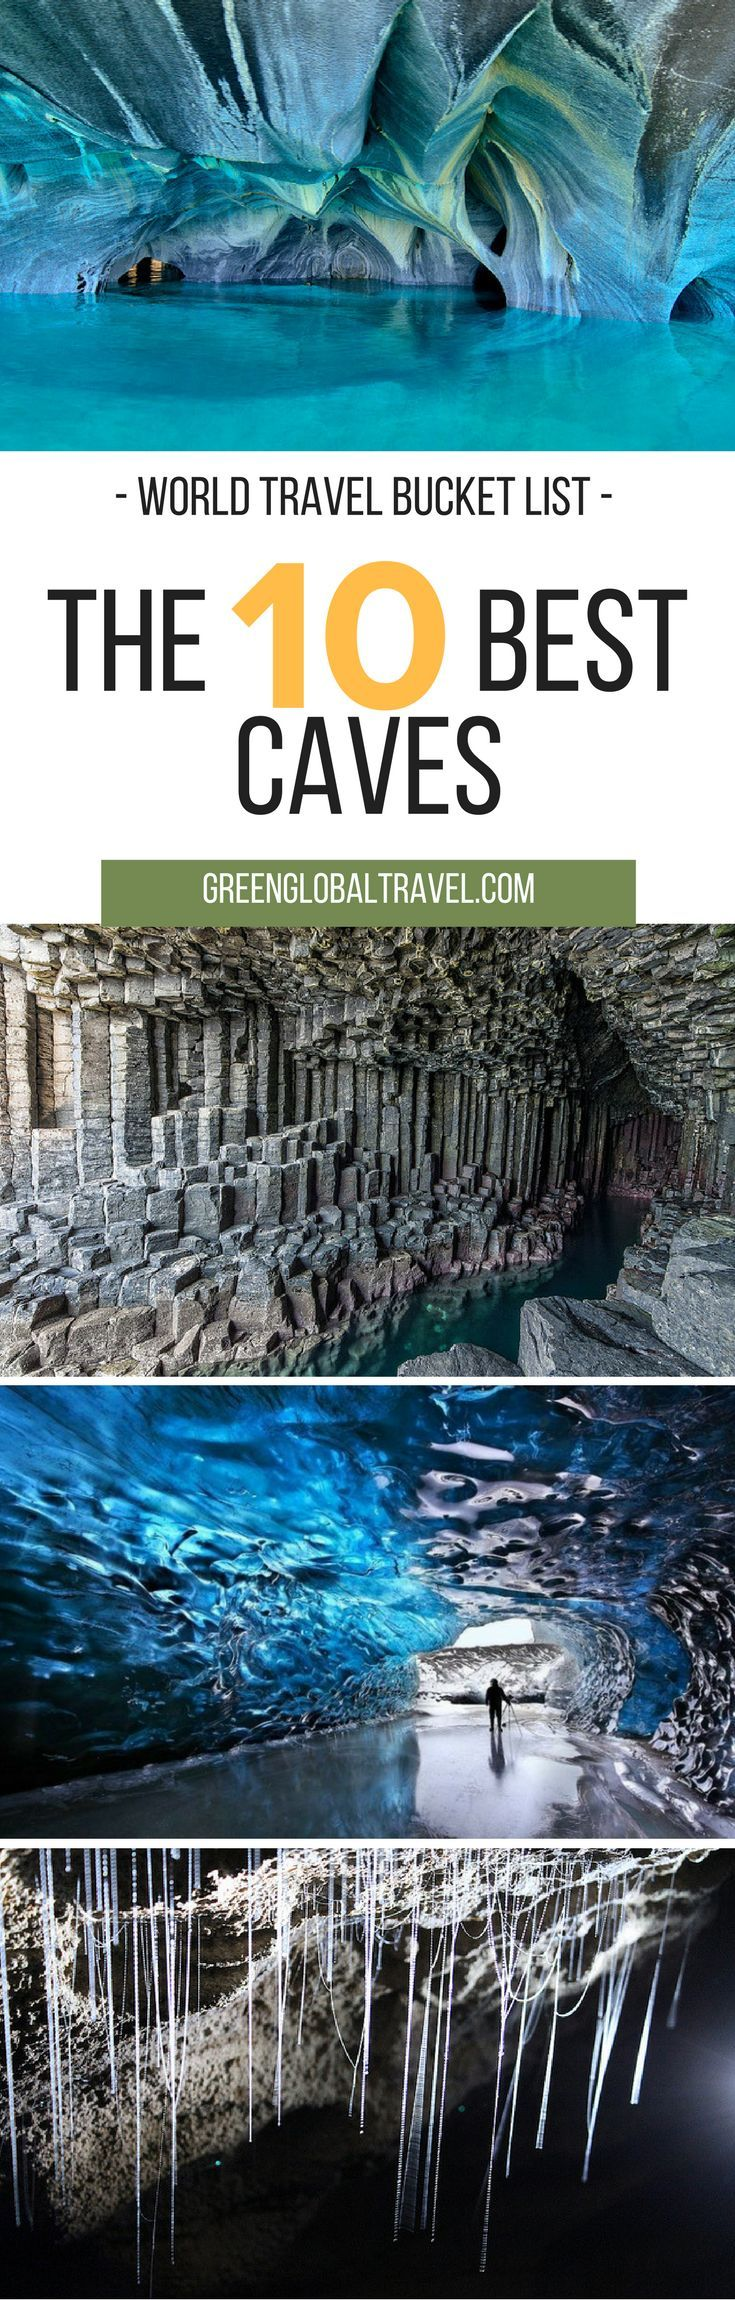 Read about our top ten caves for your world travel bucket list | Belize | New Zealand | China | Actun Tunichil | Waitomo Glowworm | Thousand Buddhas | Iceland | Skaftafell | Chile | Patagonia Marble | Vietnam | Mountain River | Scotland | Fingal's Cave | Mexico | Naica Mine | France | Chauvet | Australia | Hastings |